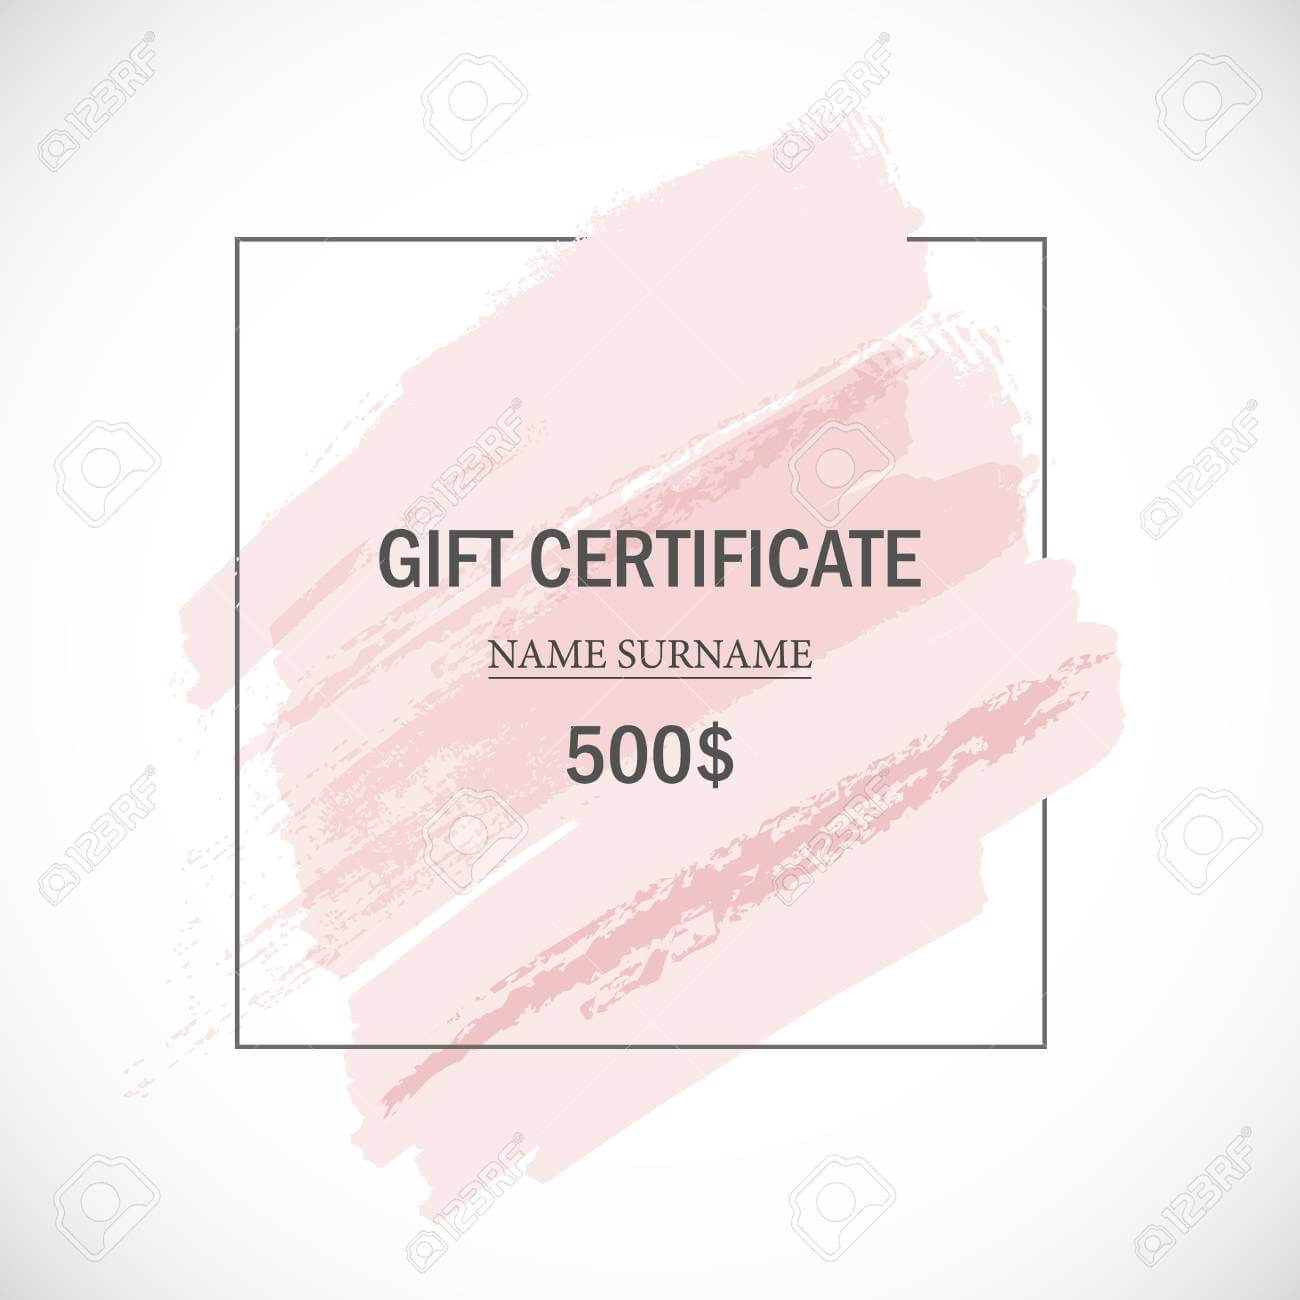 Pink Gift Certificate Template. In Pink Gift Certificate Template